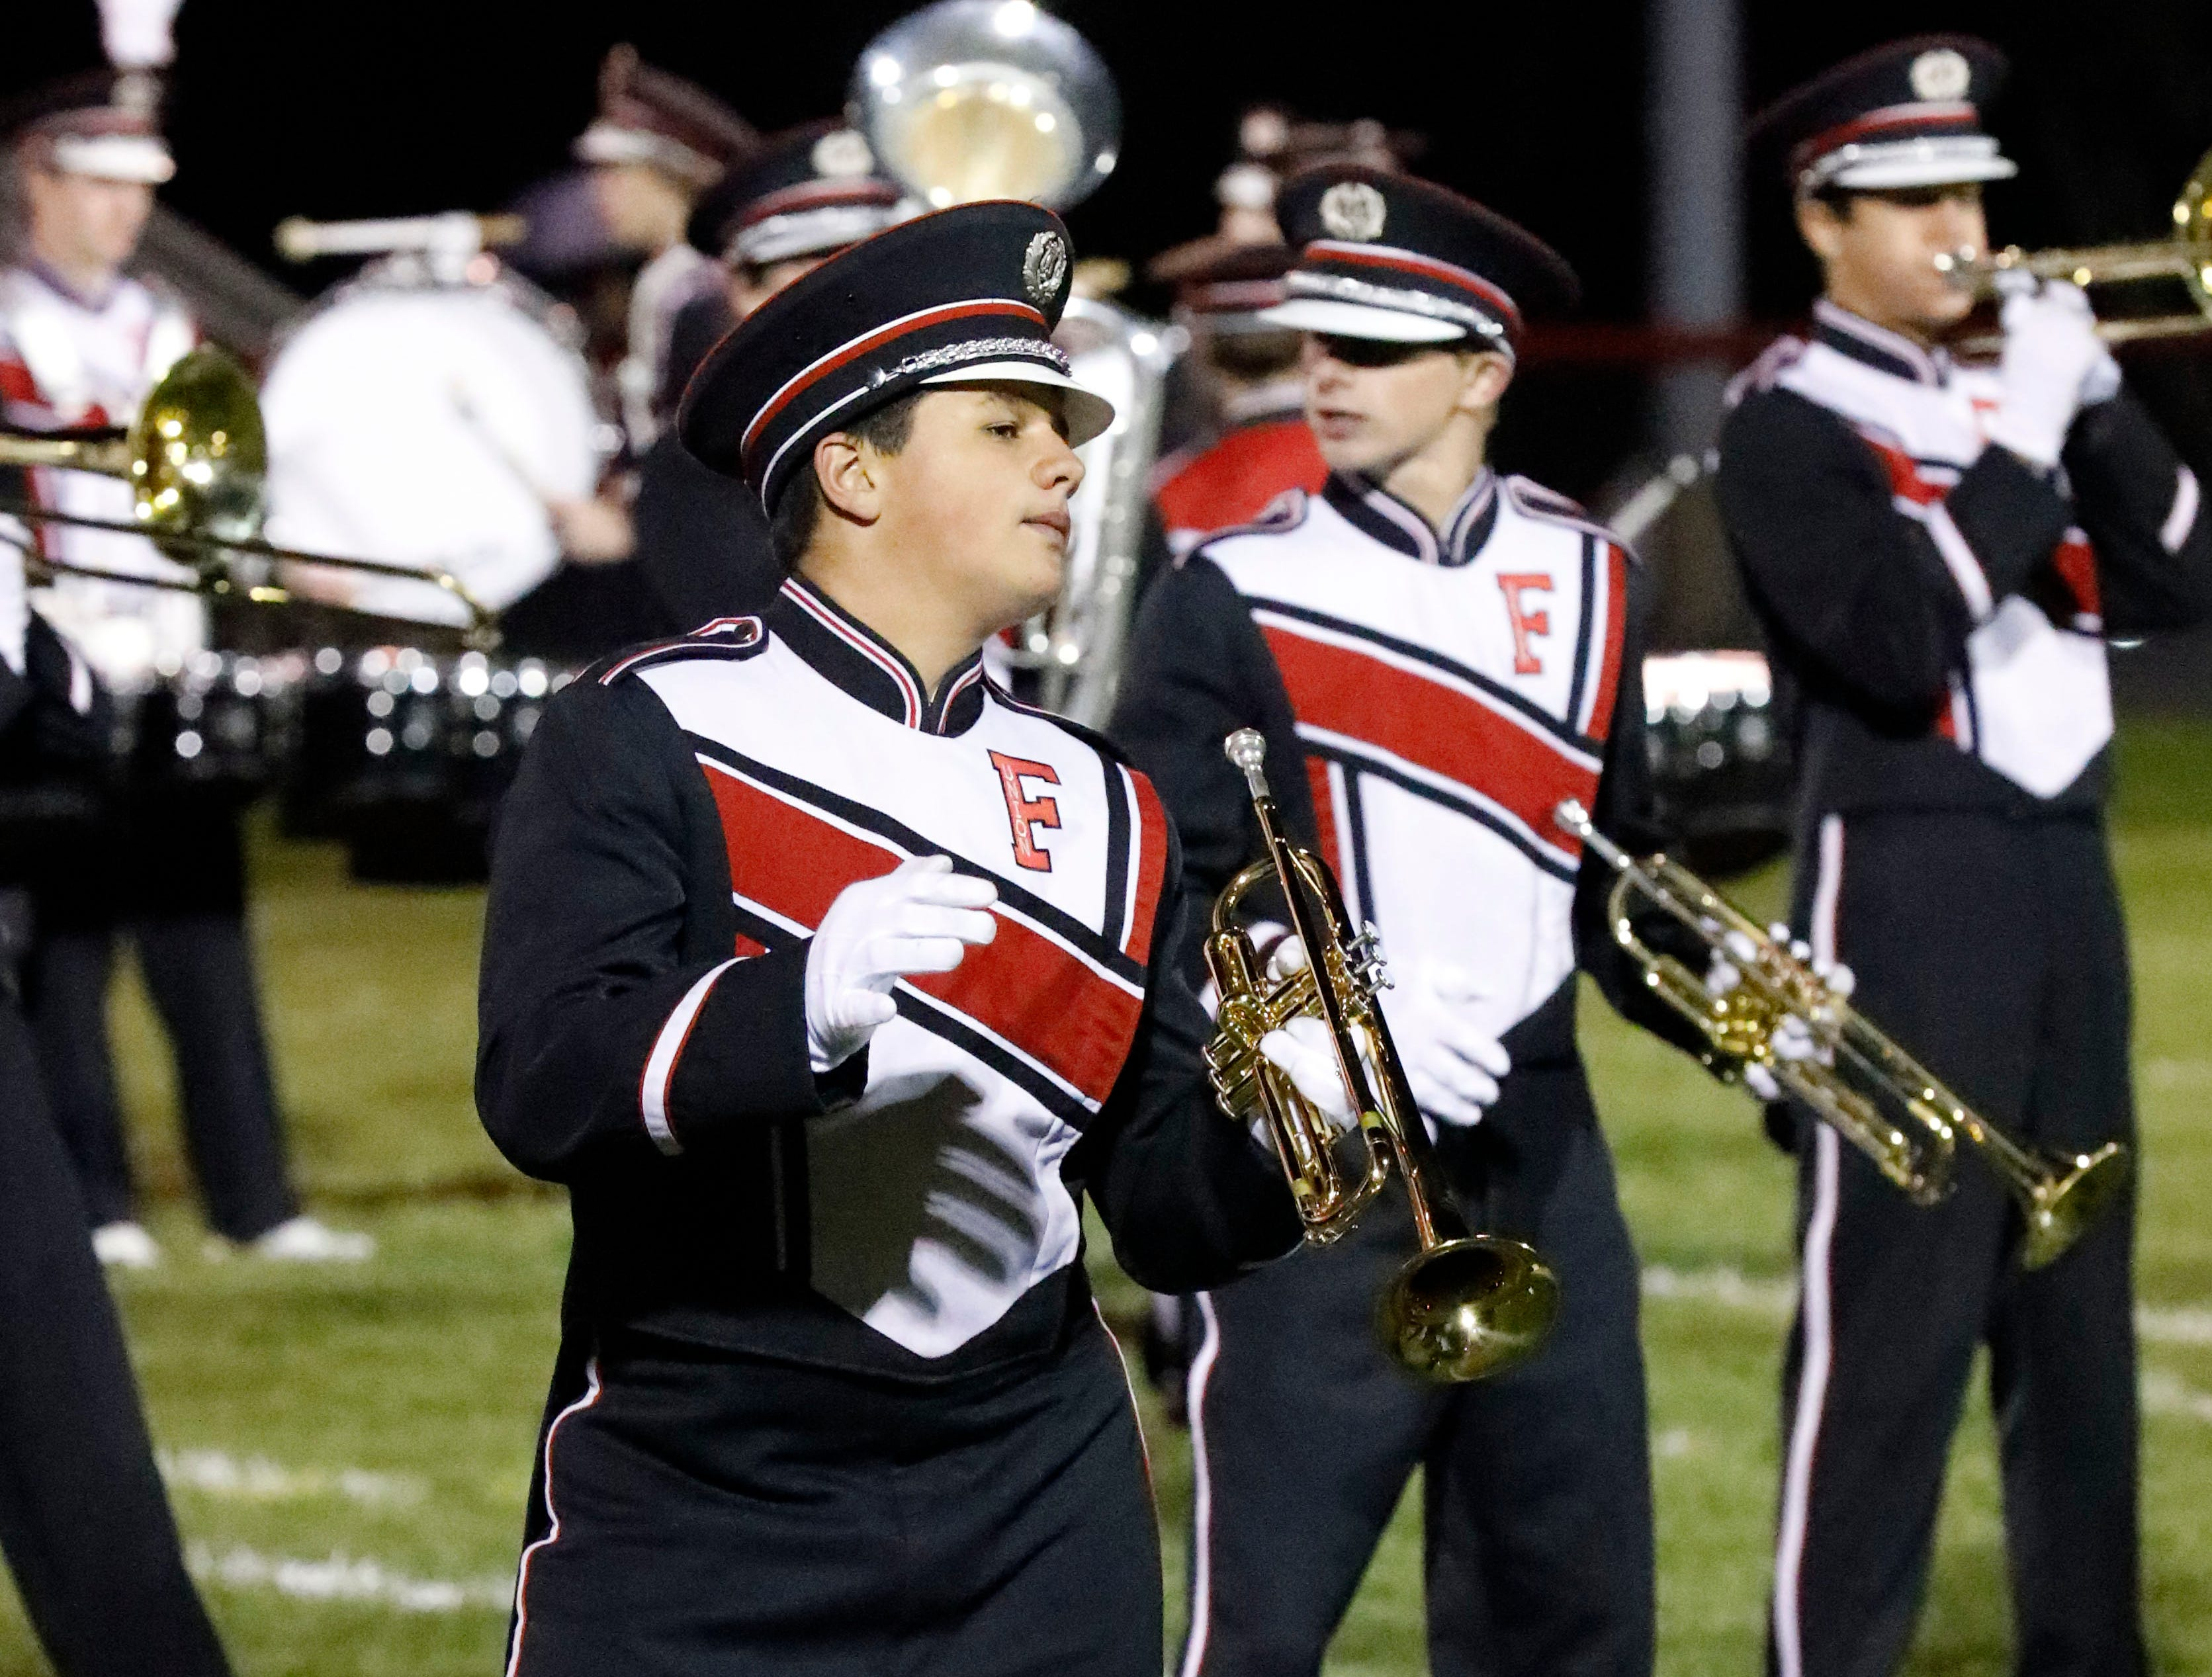 The Fairfield Union High School marching band perform during halftime at Friday night's football game, Oct. 19, 2018, at Fairfield Union High School in Rushville.